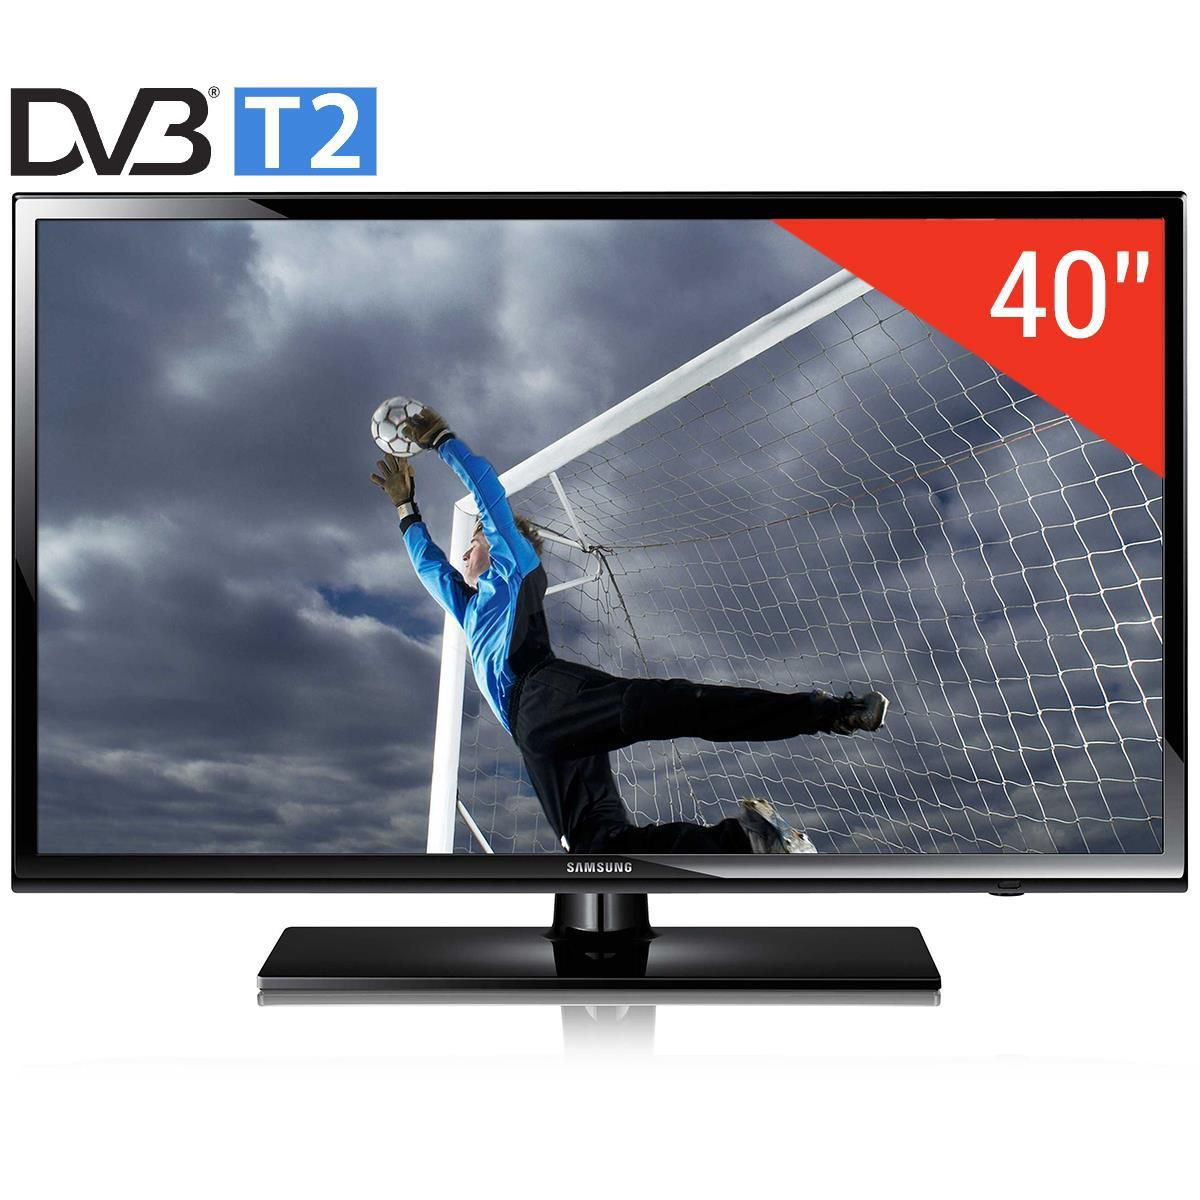 Tivi led Samsung UA40H4200, HD 100Hz